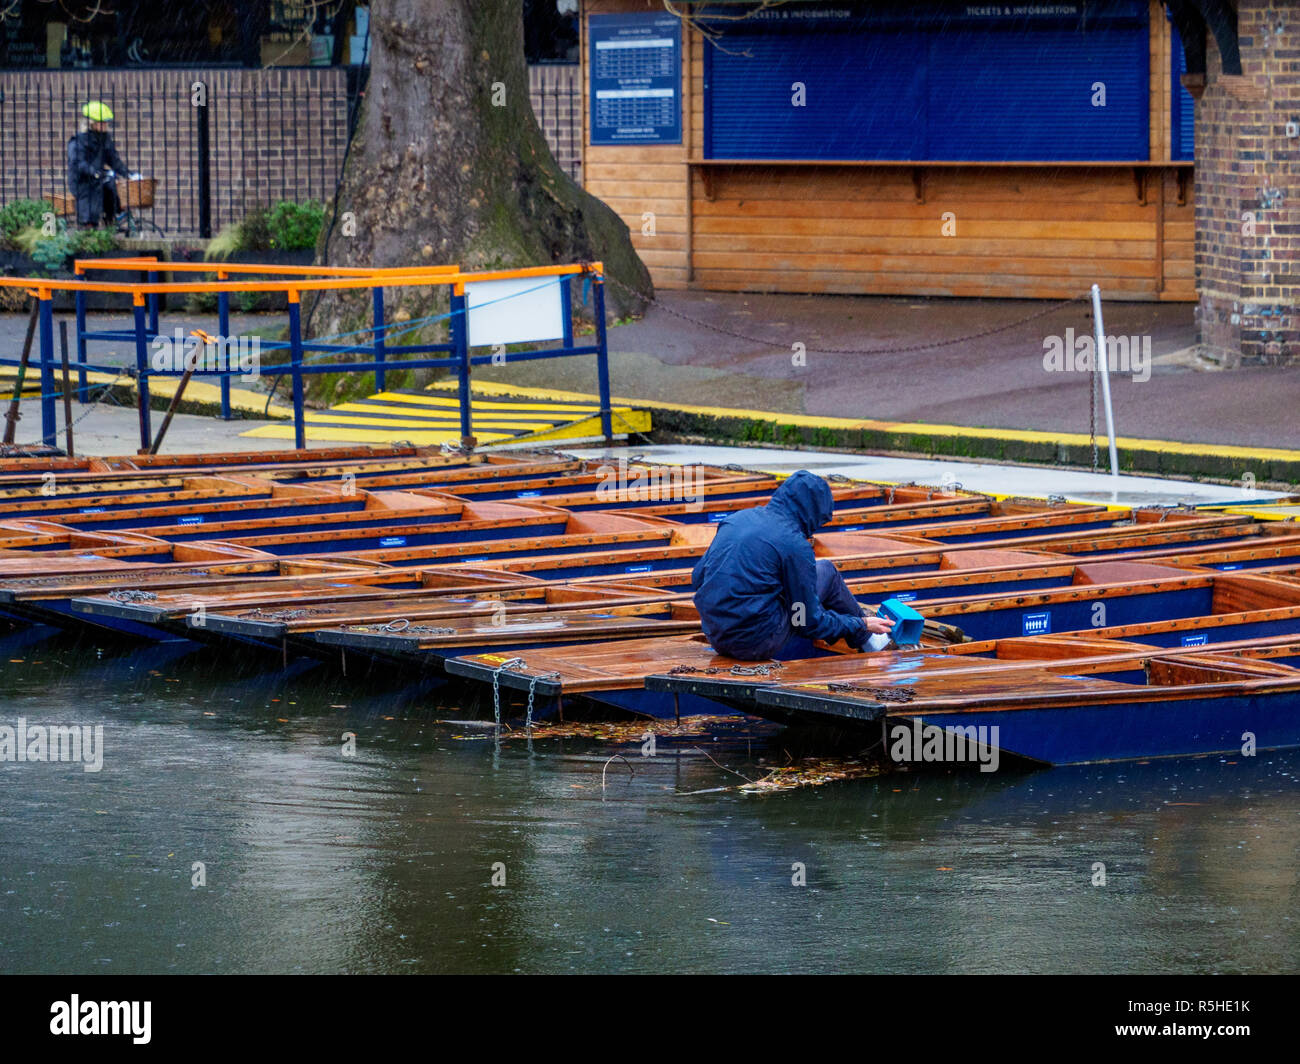 Winter Tourism Cambridge - an employee empties water from punts in Cambridge city centre - Stock Image